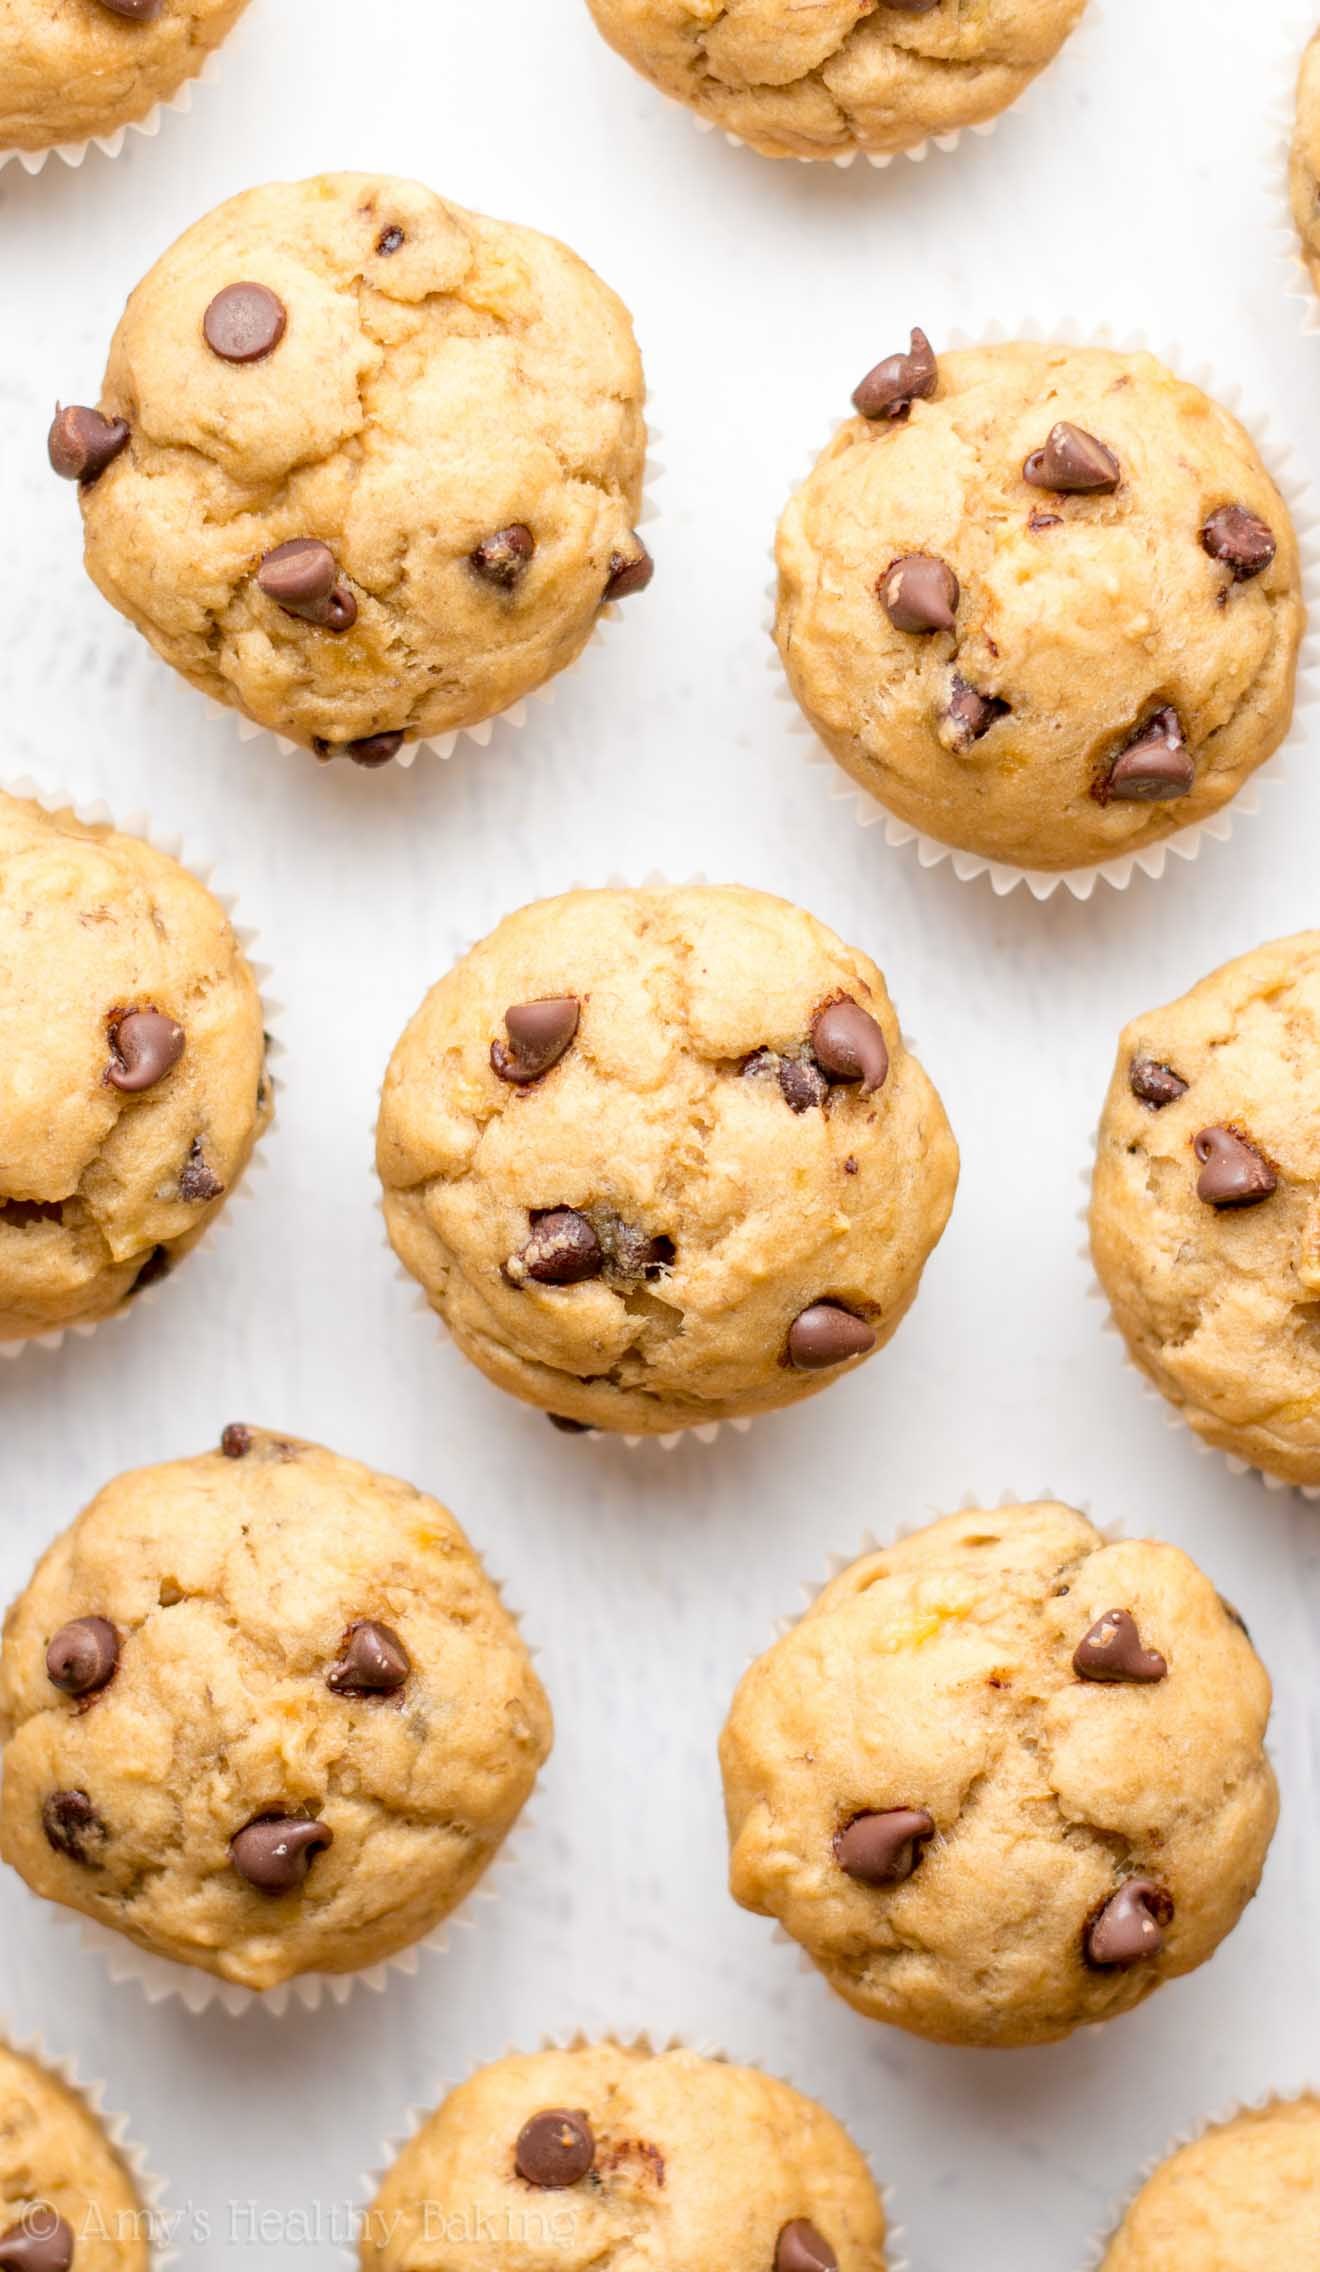 Chocolate Chip Banana Mini Muffins | Amy's Healthy Baking